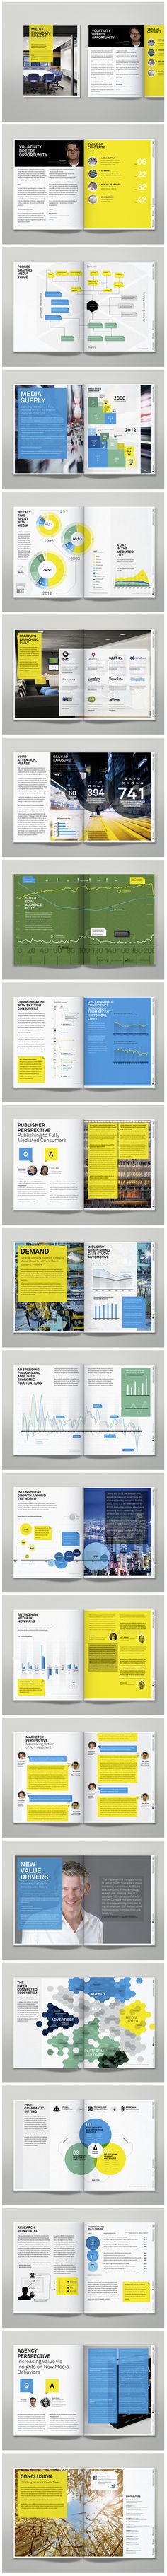 Editorial- and Information-Design for the first Media Economy Report for IPG Mediabrands and their strategic global media unit MagnaGlobal.Informed by the global resources of IPG MEDIABRANDS, this inaugural Media Economy Report contains an overview of t… Editorial Design Layouts, Graphic Design Layouts, Graphic Design Inspiration, Layout Design, Design Brochure, Booklet Design, Brochure Layout, Web Design, Print Design